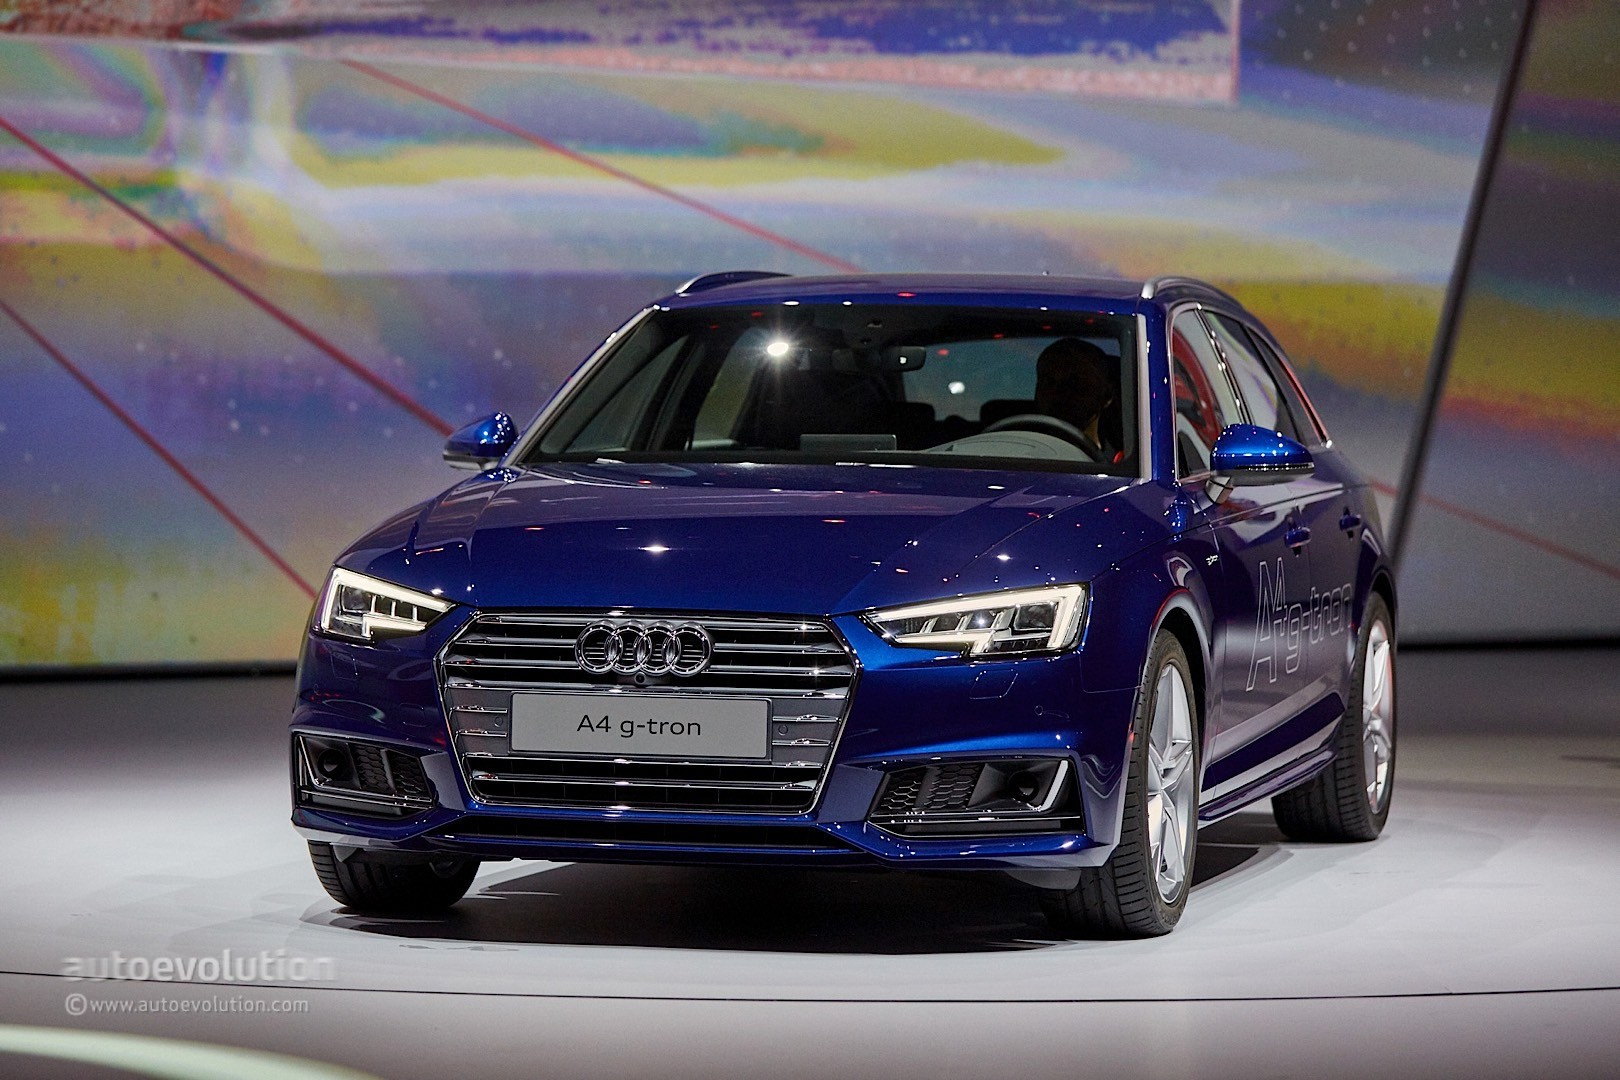 Audi A4 G Tron And A4 Ultra Are All About Economy In